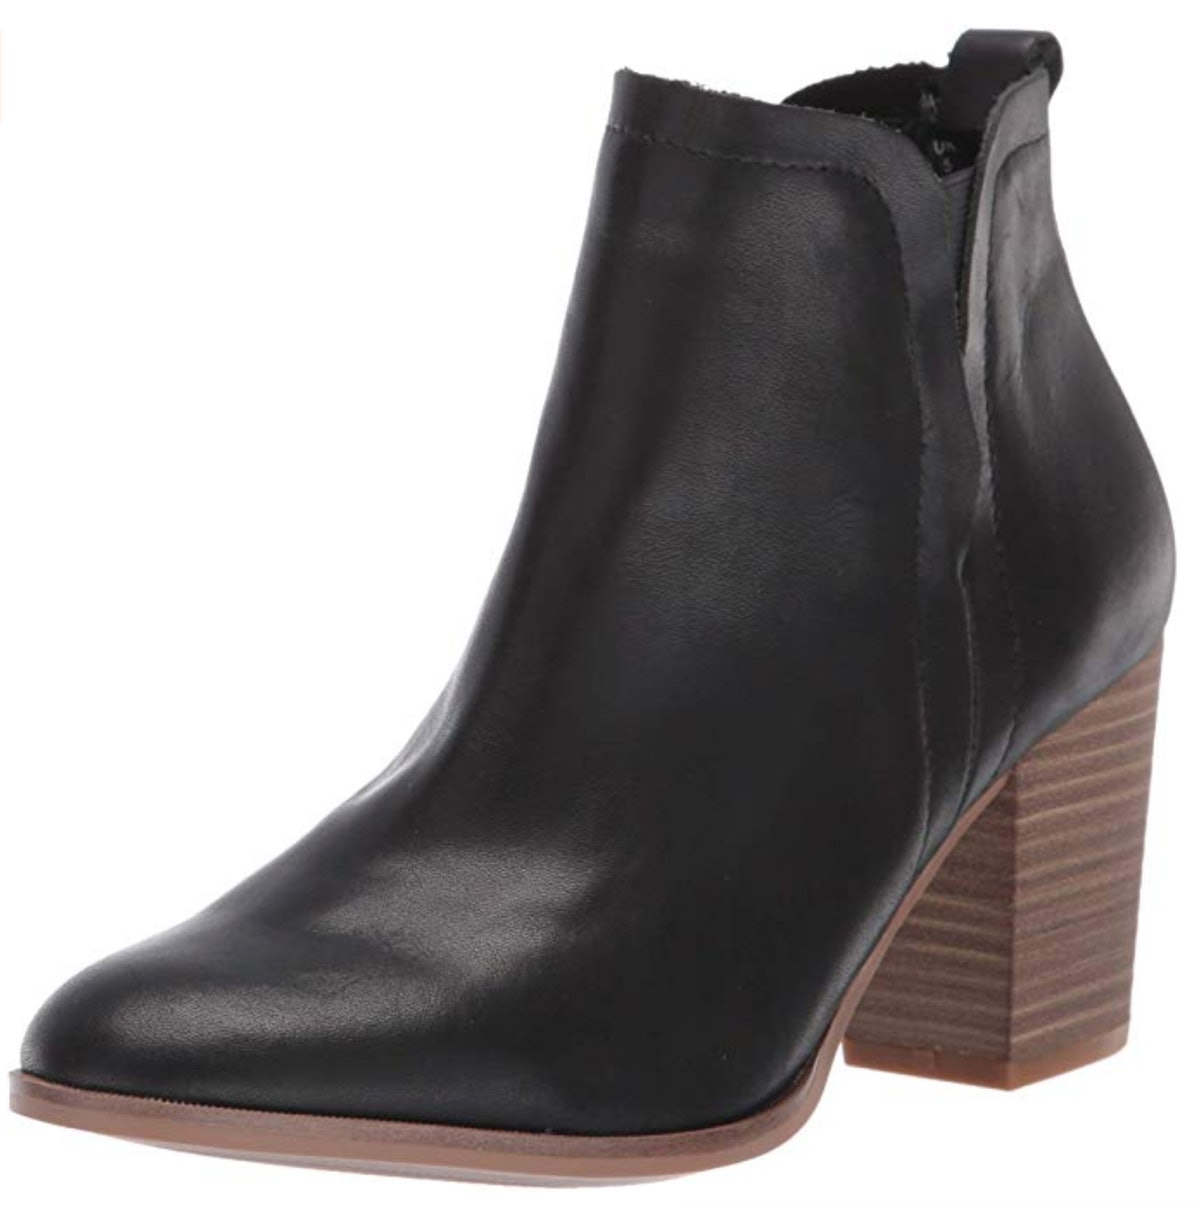 206 Collective Women's Kamy Ankle Boot